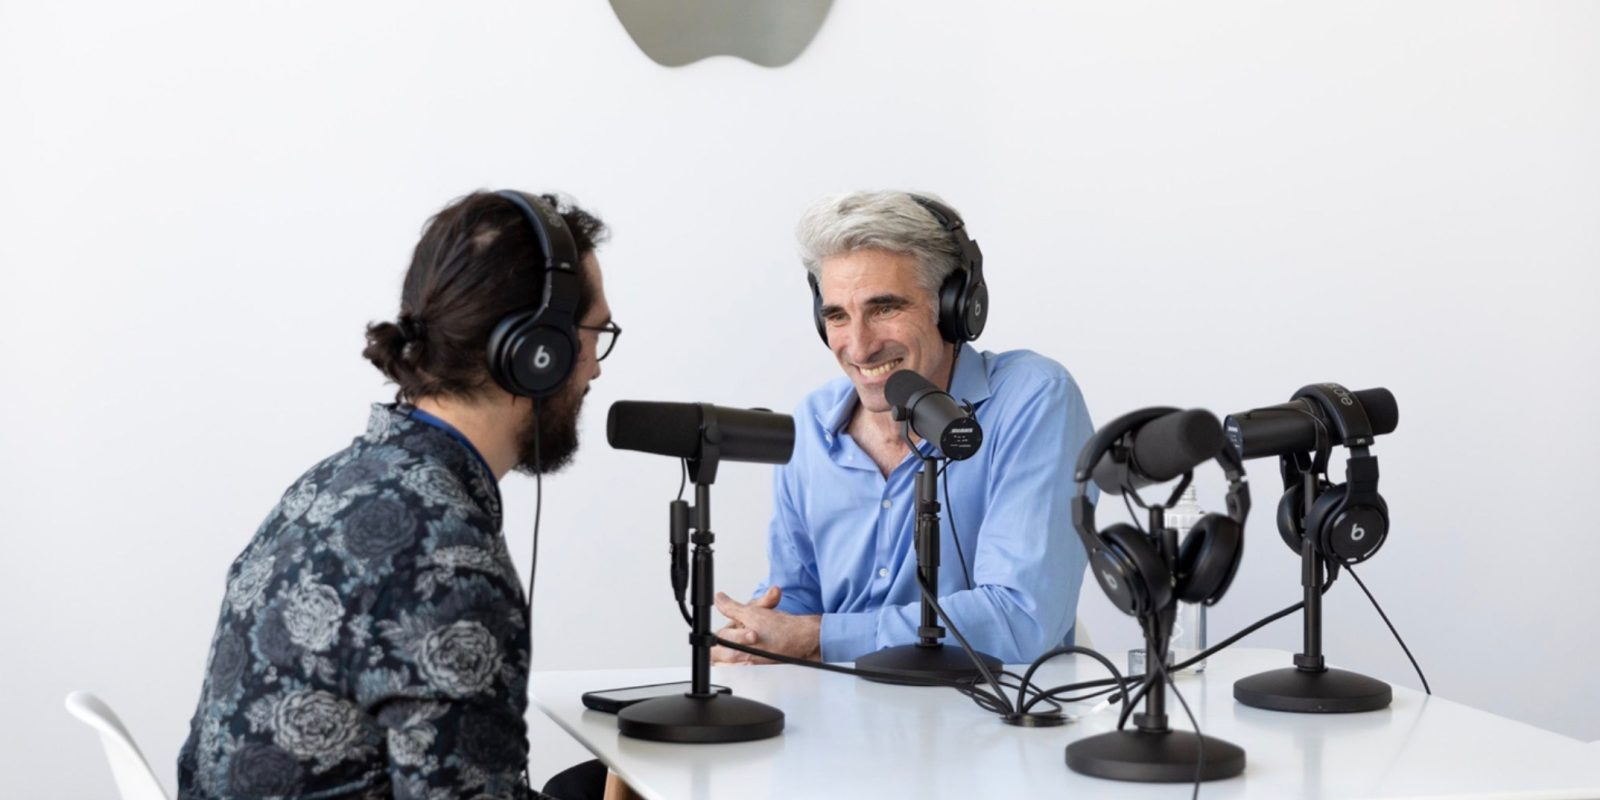 Craig Federighi goes in-depth on Catalyst, iPadOS, and Swift UI in new interview